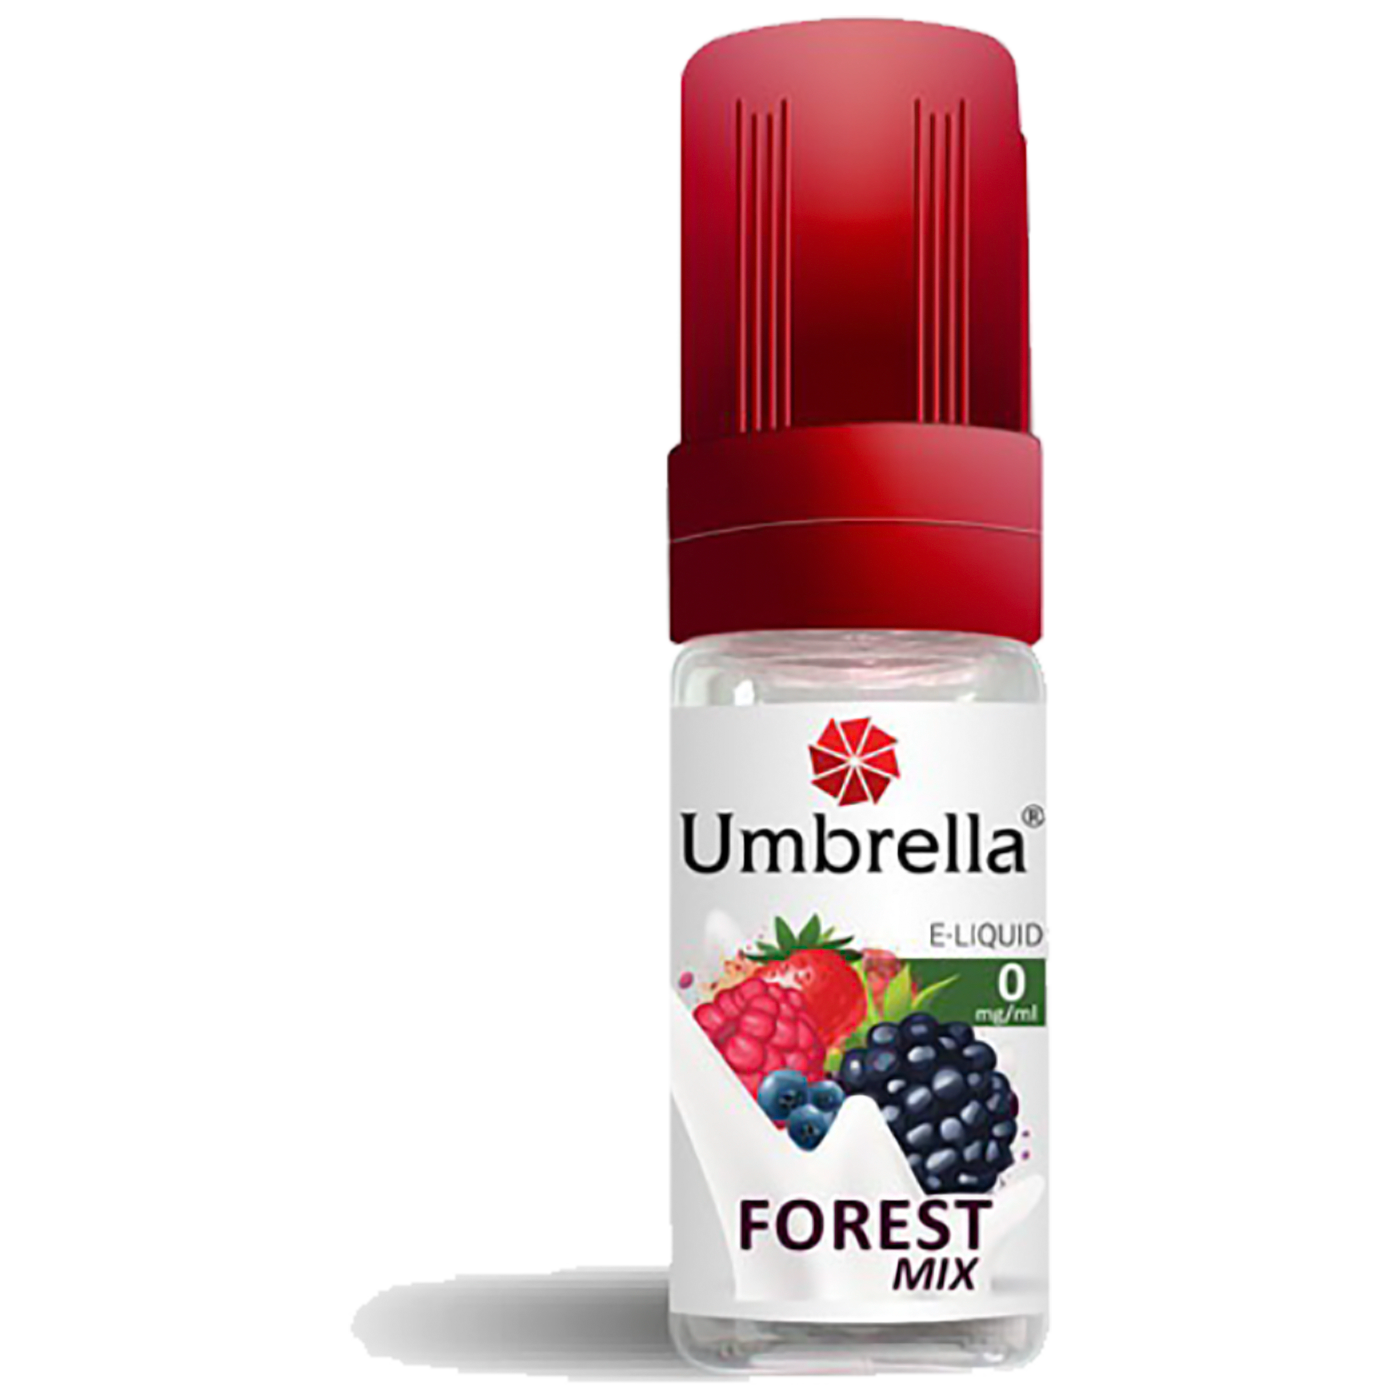 Umbrella - Forest Mix Tobacco 18mg